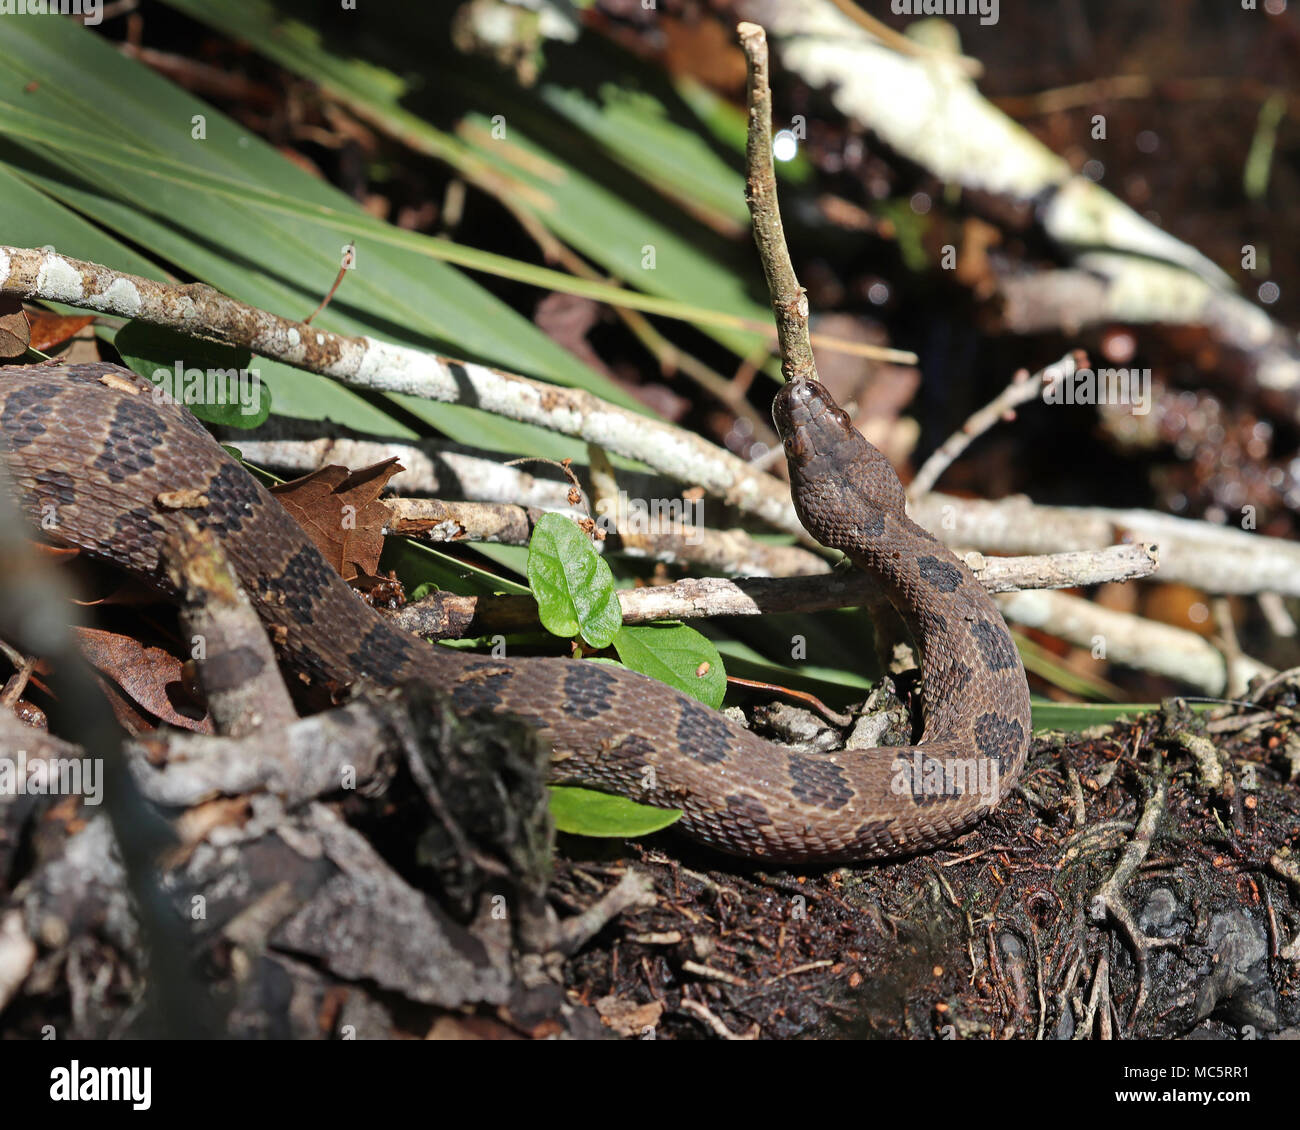 Brown water snakes are a nonvenomous water snake often found along the edges of rivers and lakes in southern states. - Stock Image